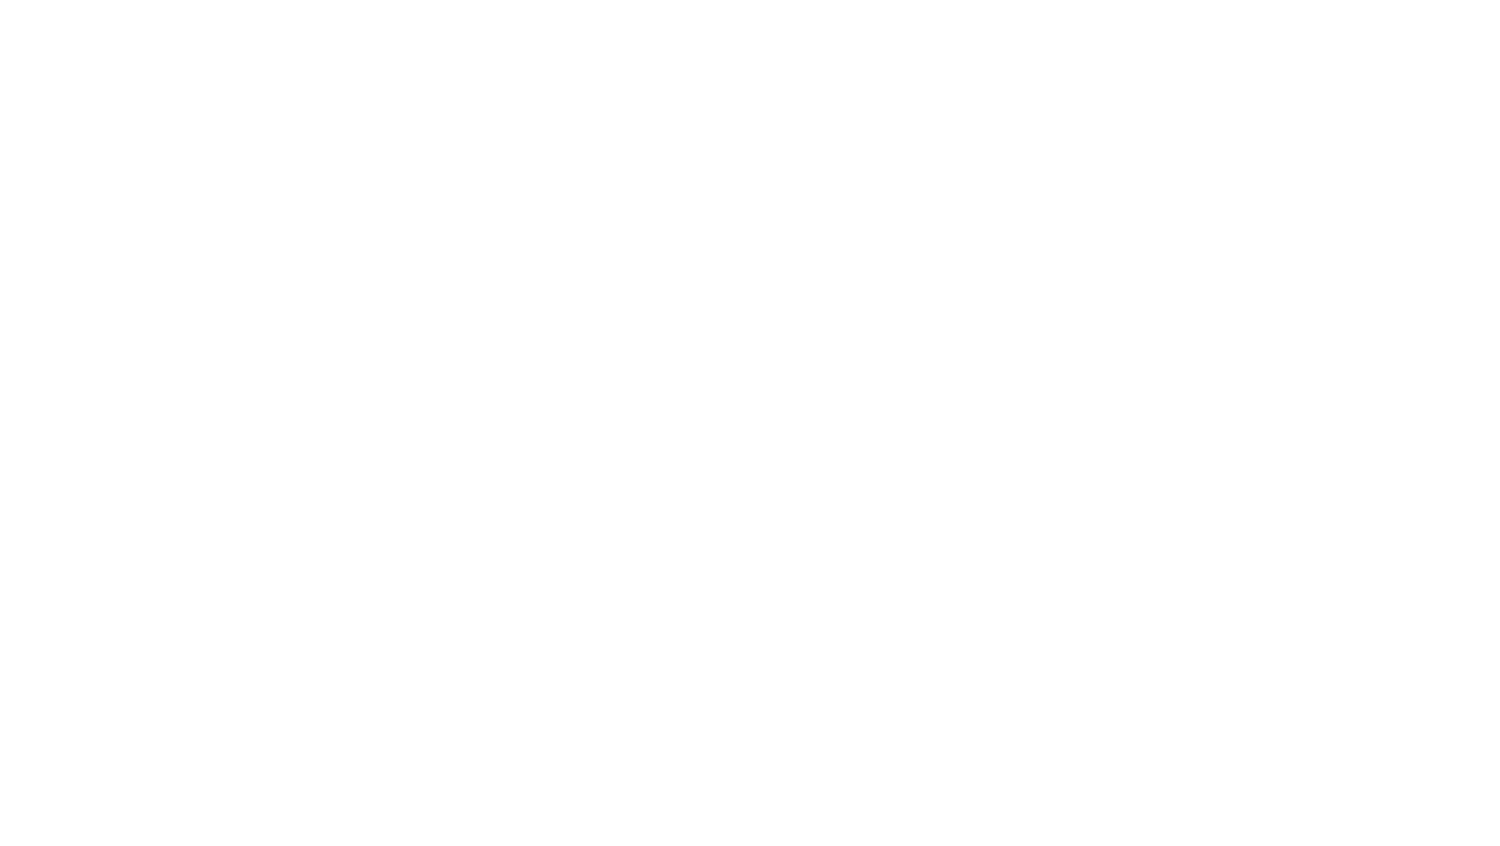 APetchell Coaching